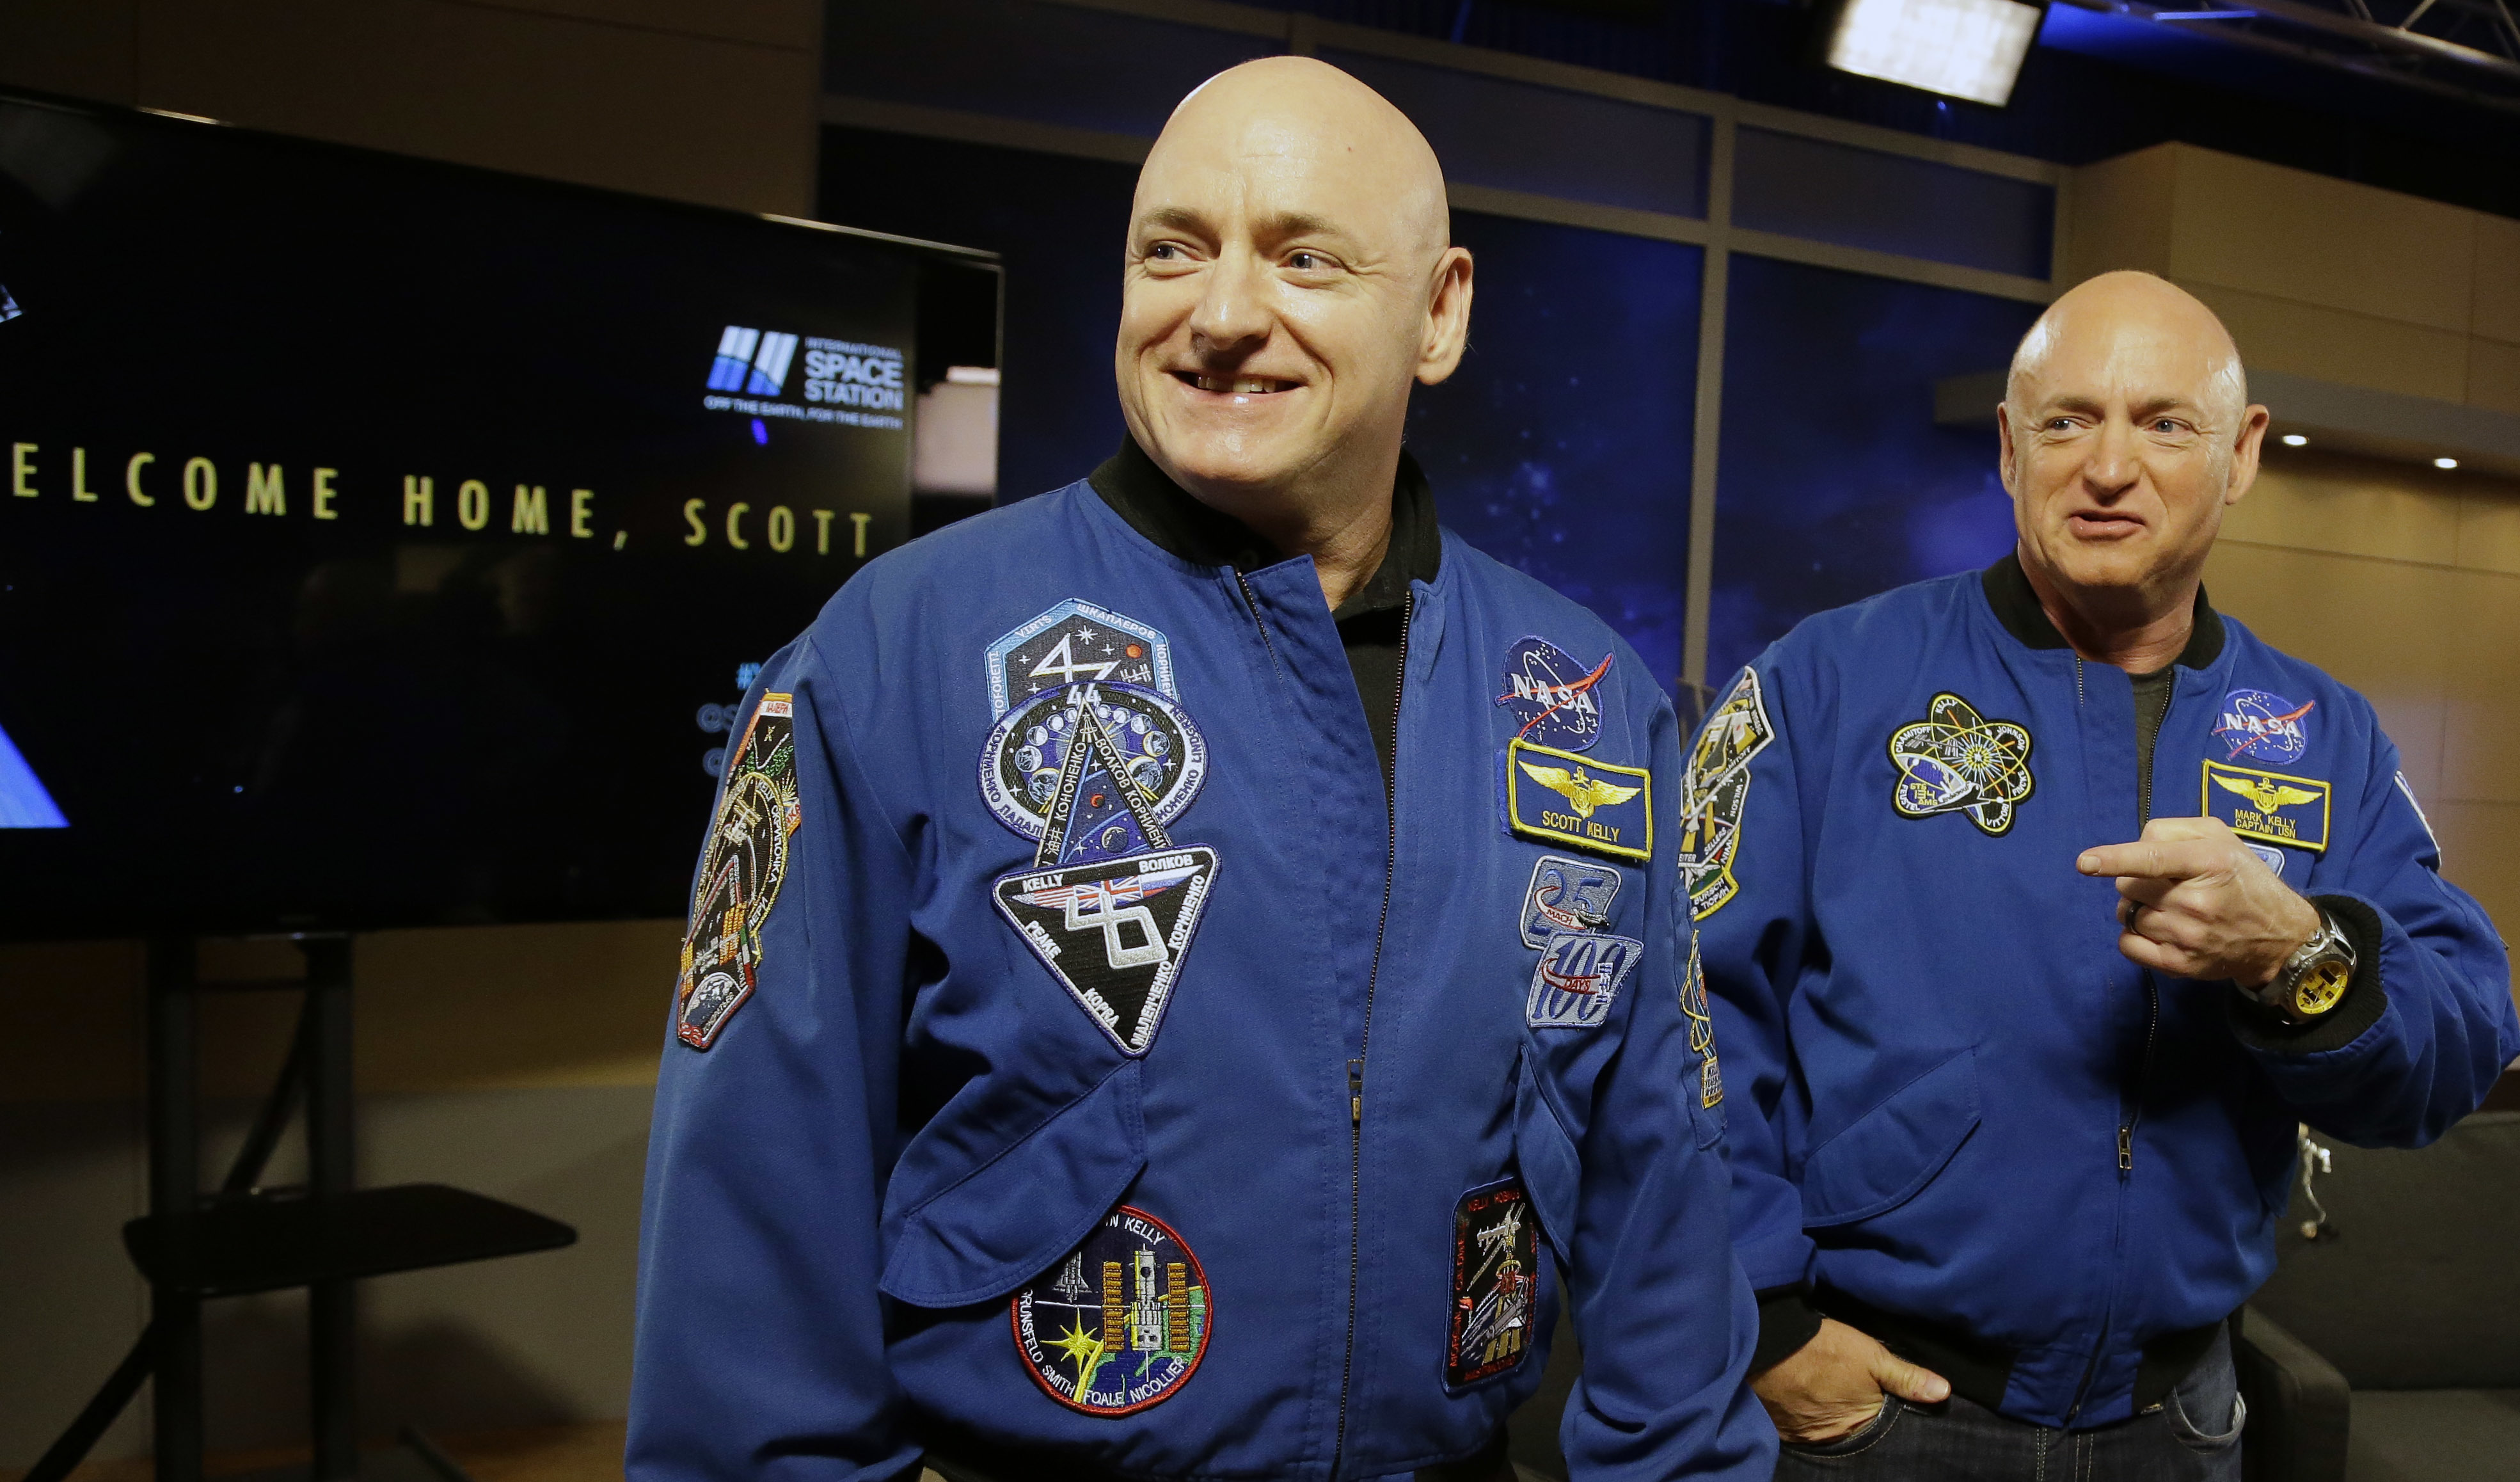 Scott Kelly: Space travel has 'permanent effects'